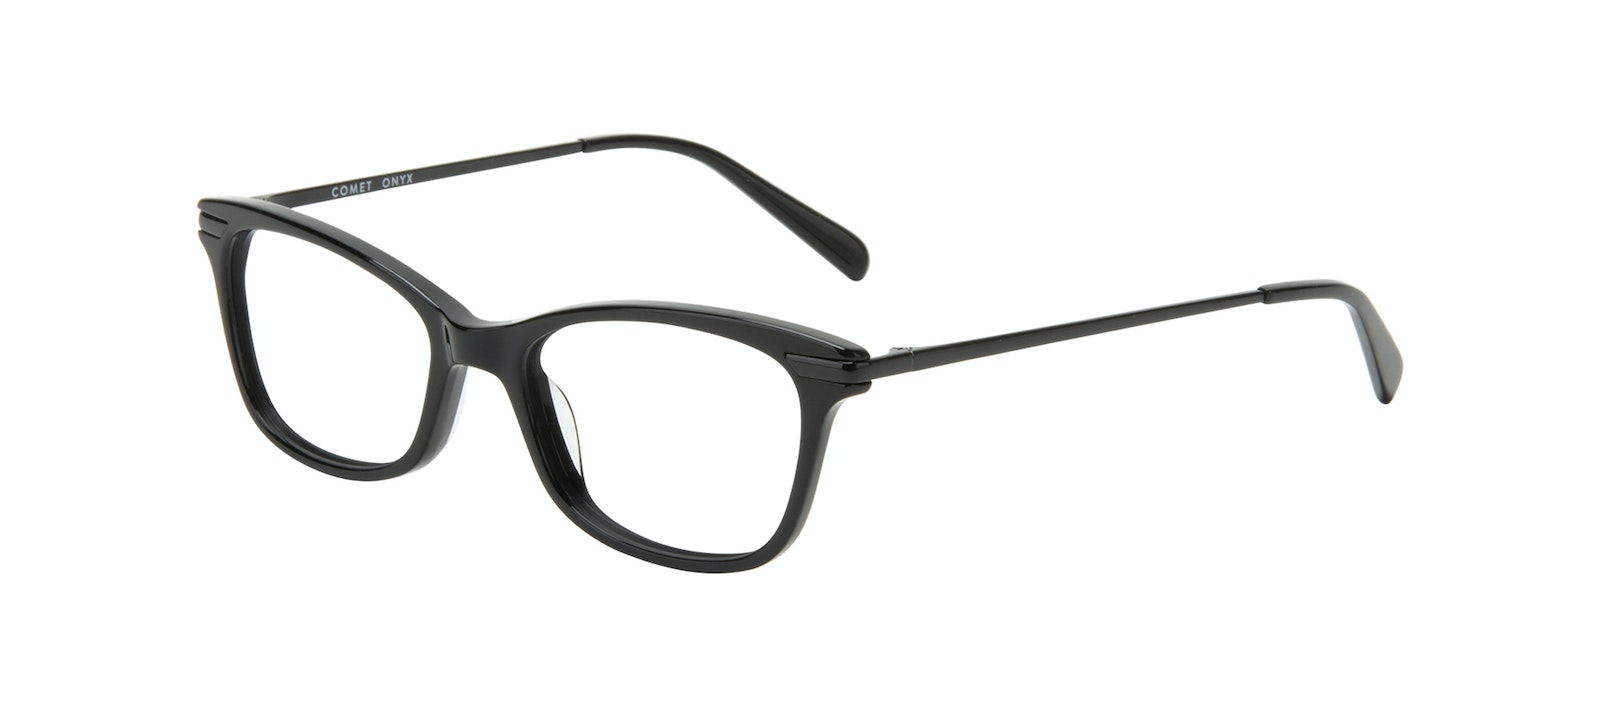 Affordable Fashion Glasses Rectangle Eyeglasses Women Comet II Onyx Tilt